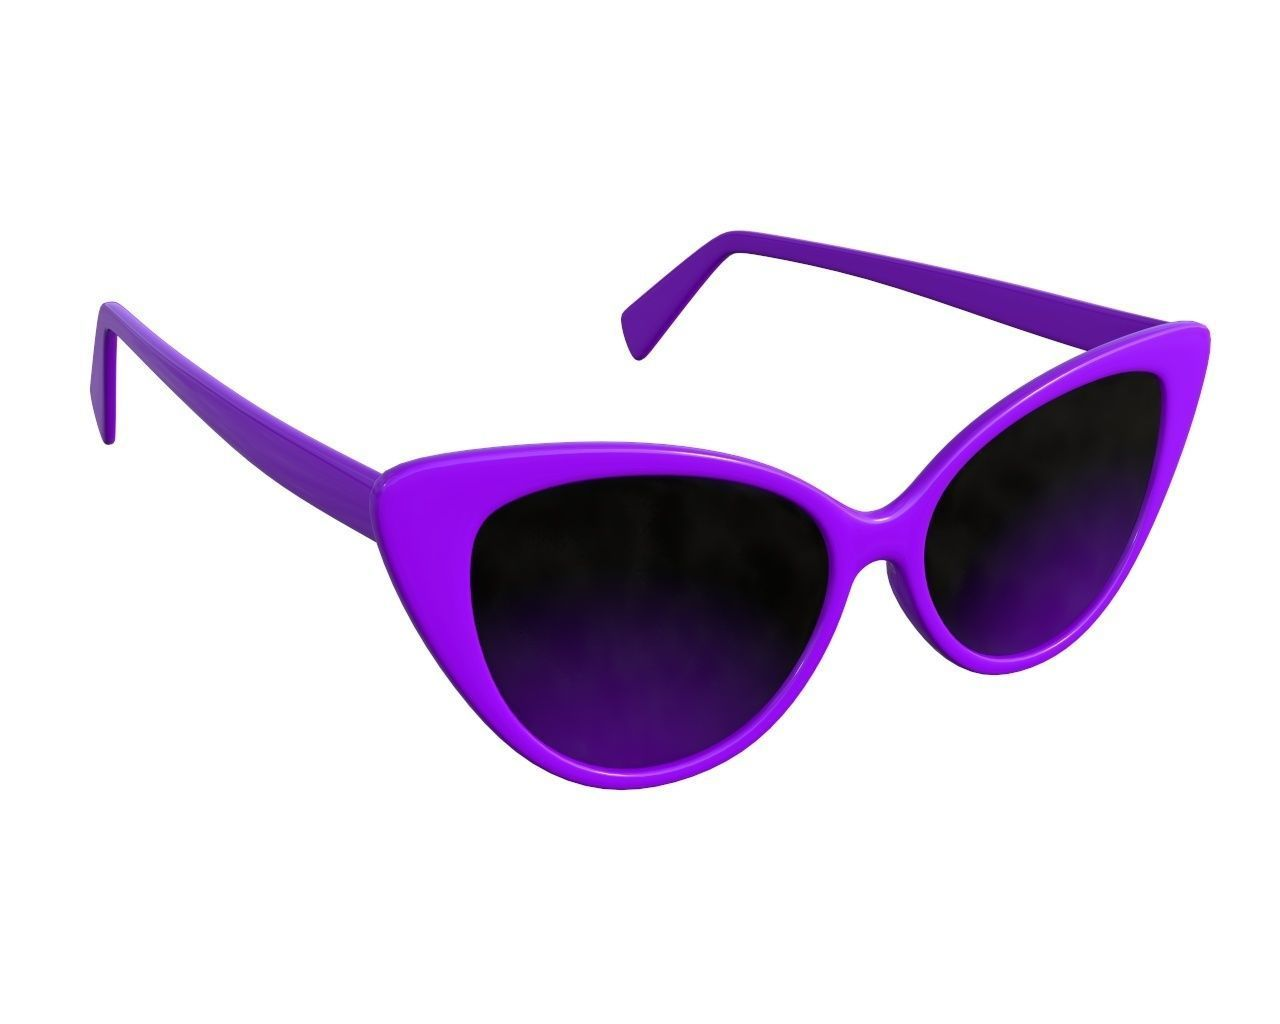 Butterfly shaped sun glasses